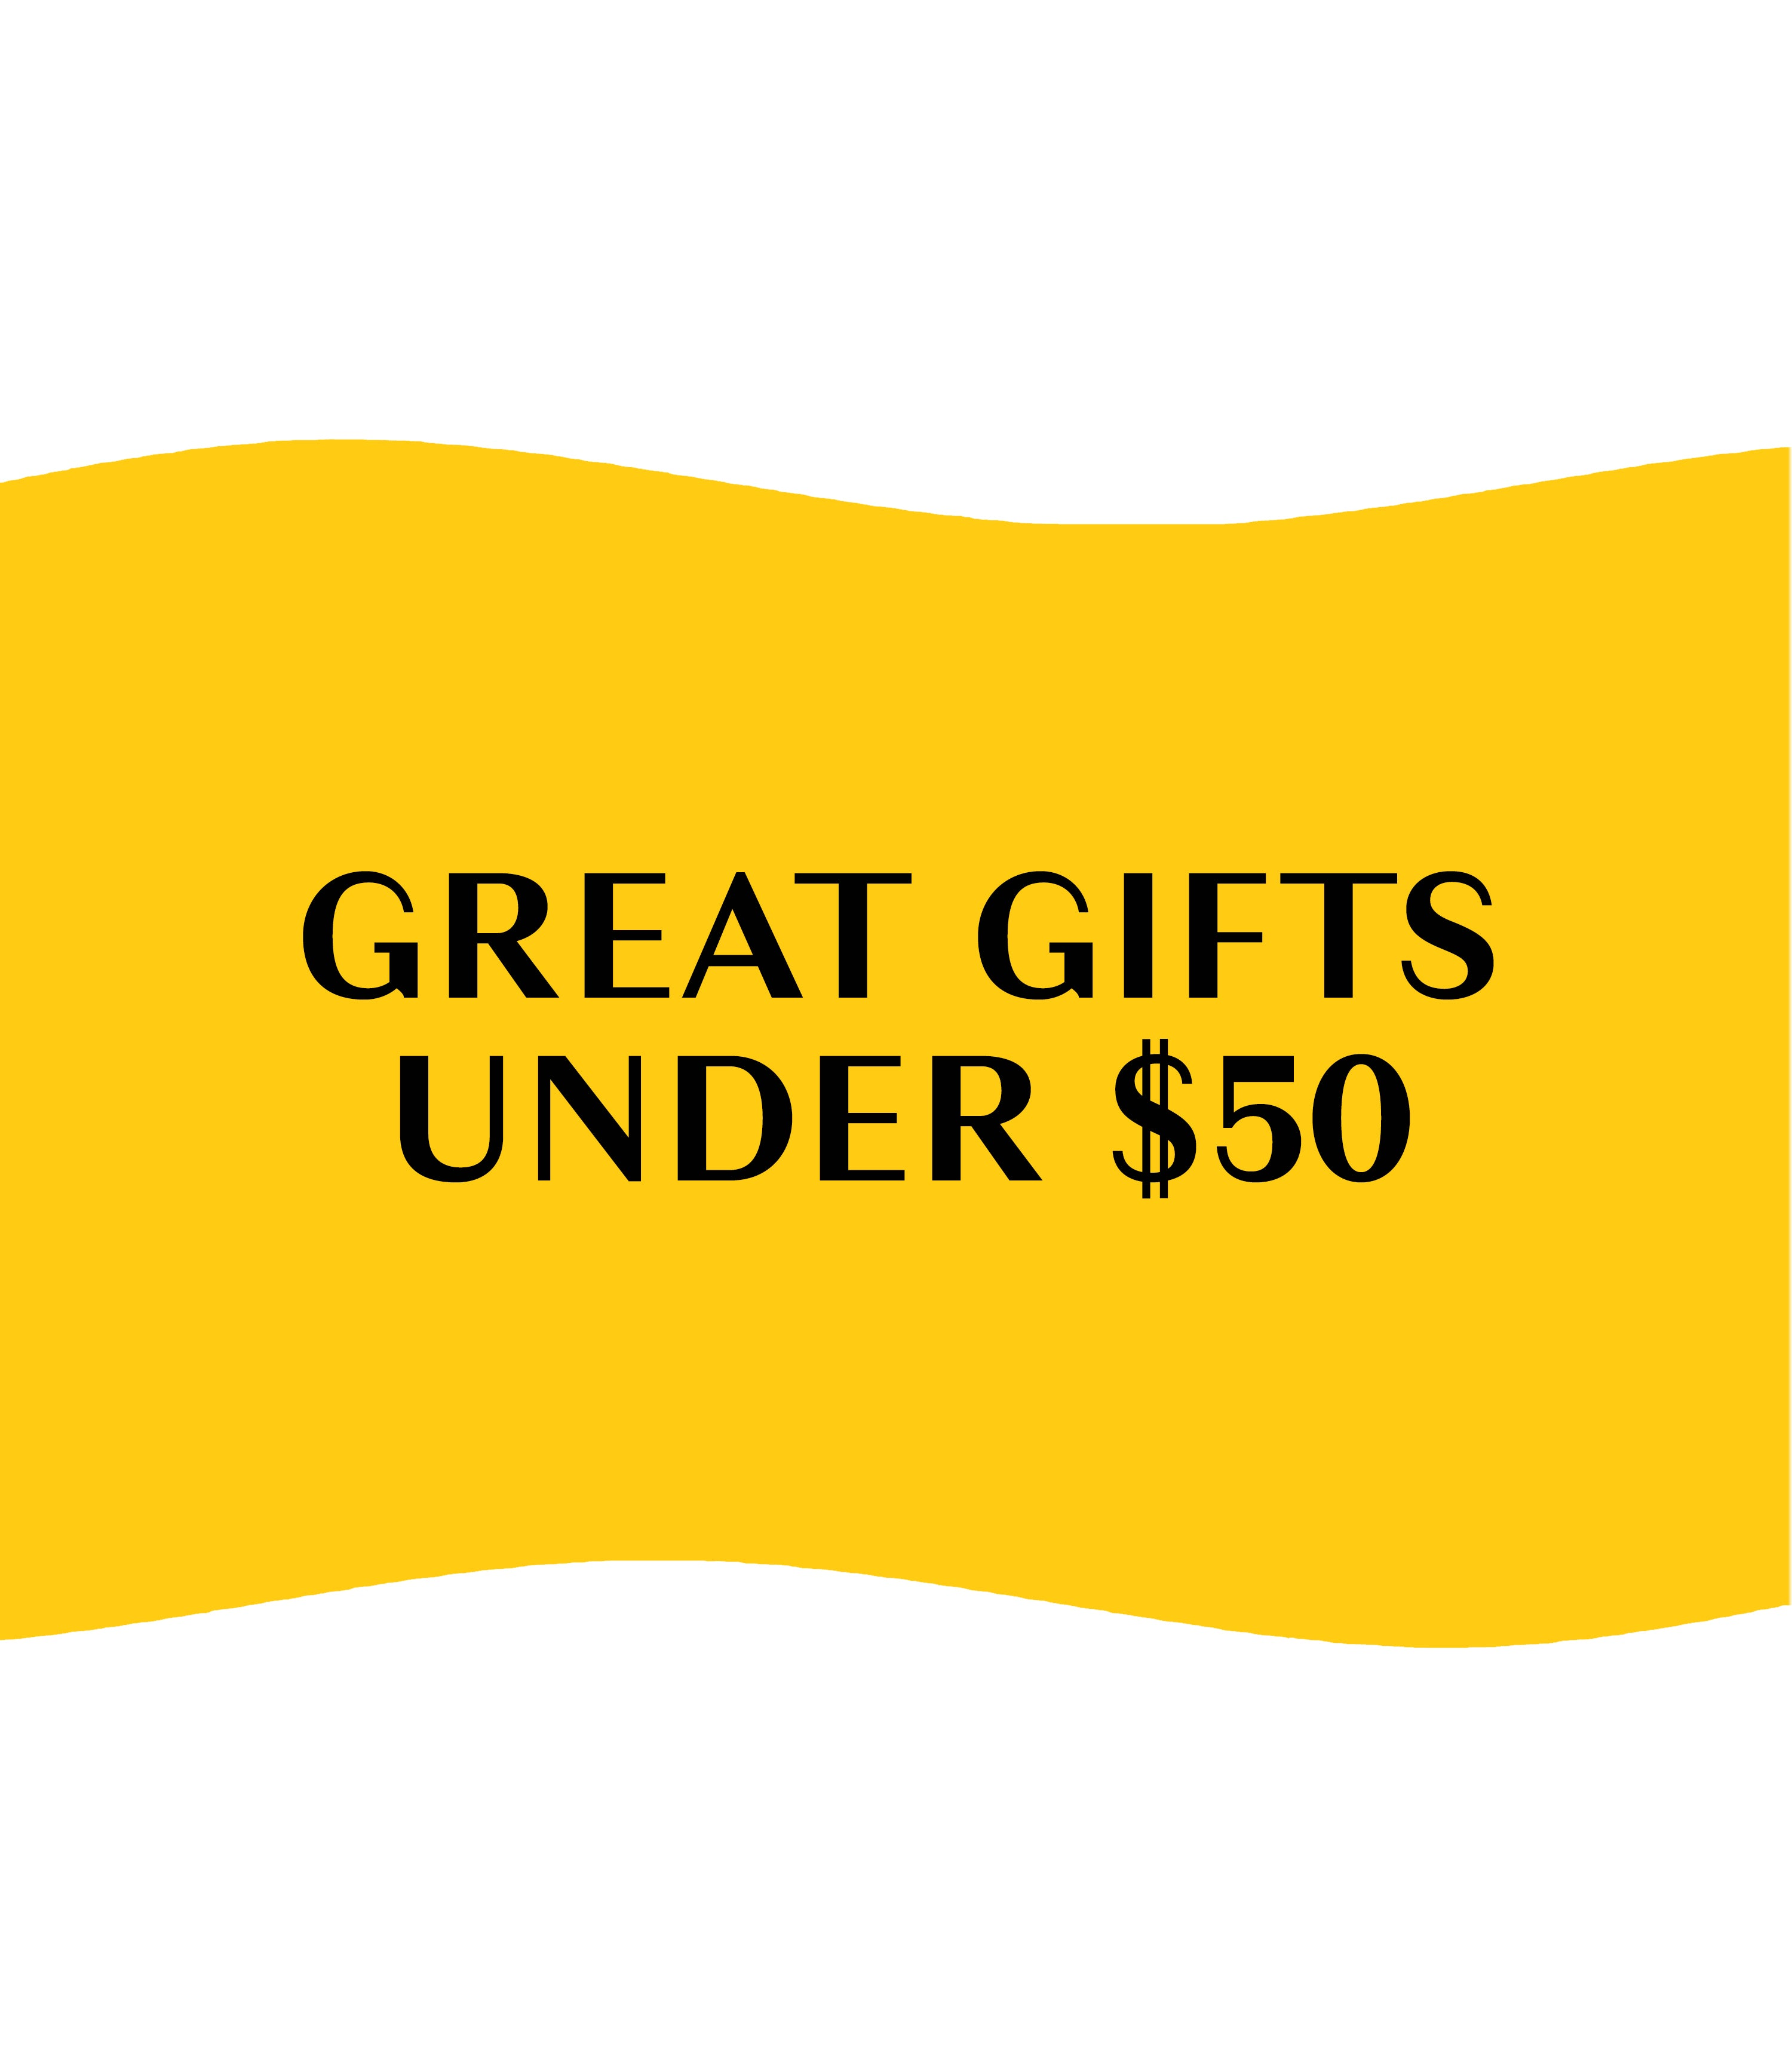 Holiday Gift Guide 2020 - Gifts Under $50 - Holiday Gift Guide 2020 - Gifts Under $50